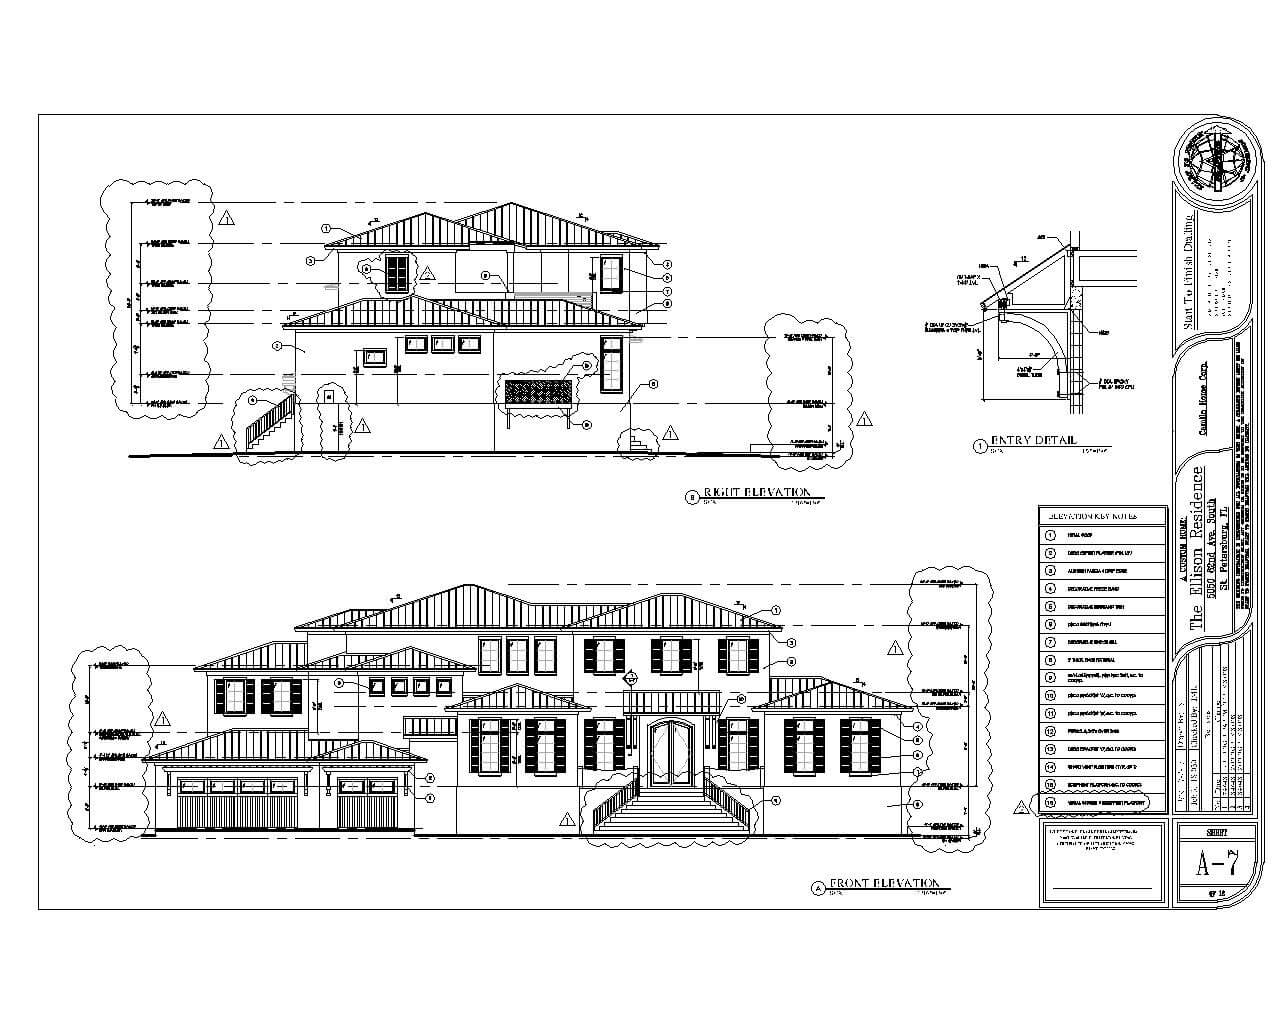 As-Built Plans Drafting and Design | House Floor Plans | FL ... on drafting doors, drafting plan kitchen, drafting a letter, drafting office, home drawing plans, drafting engineers, drafting plumbing plan,